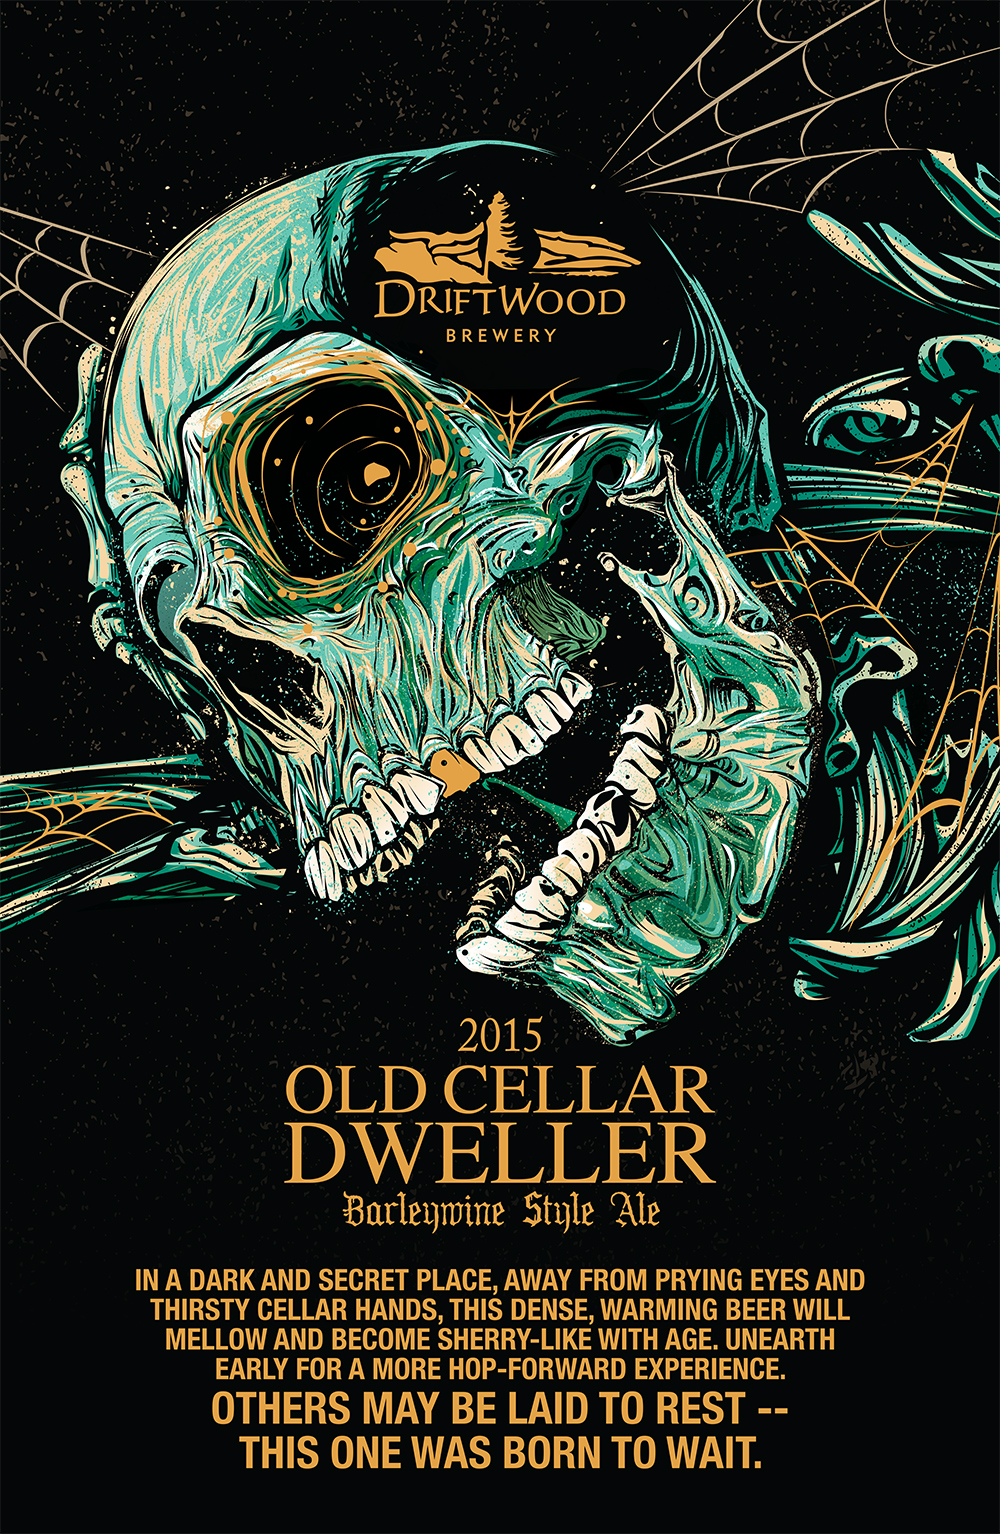 Poster Design for Driftwood Brewery's Old Cellar Dweller Barleywine